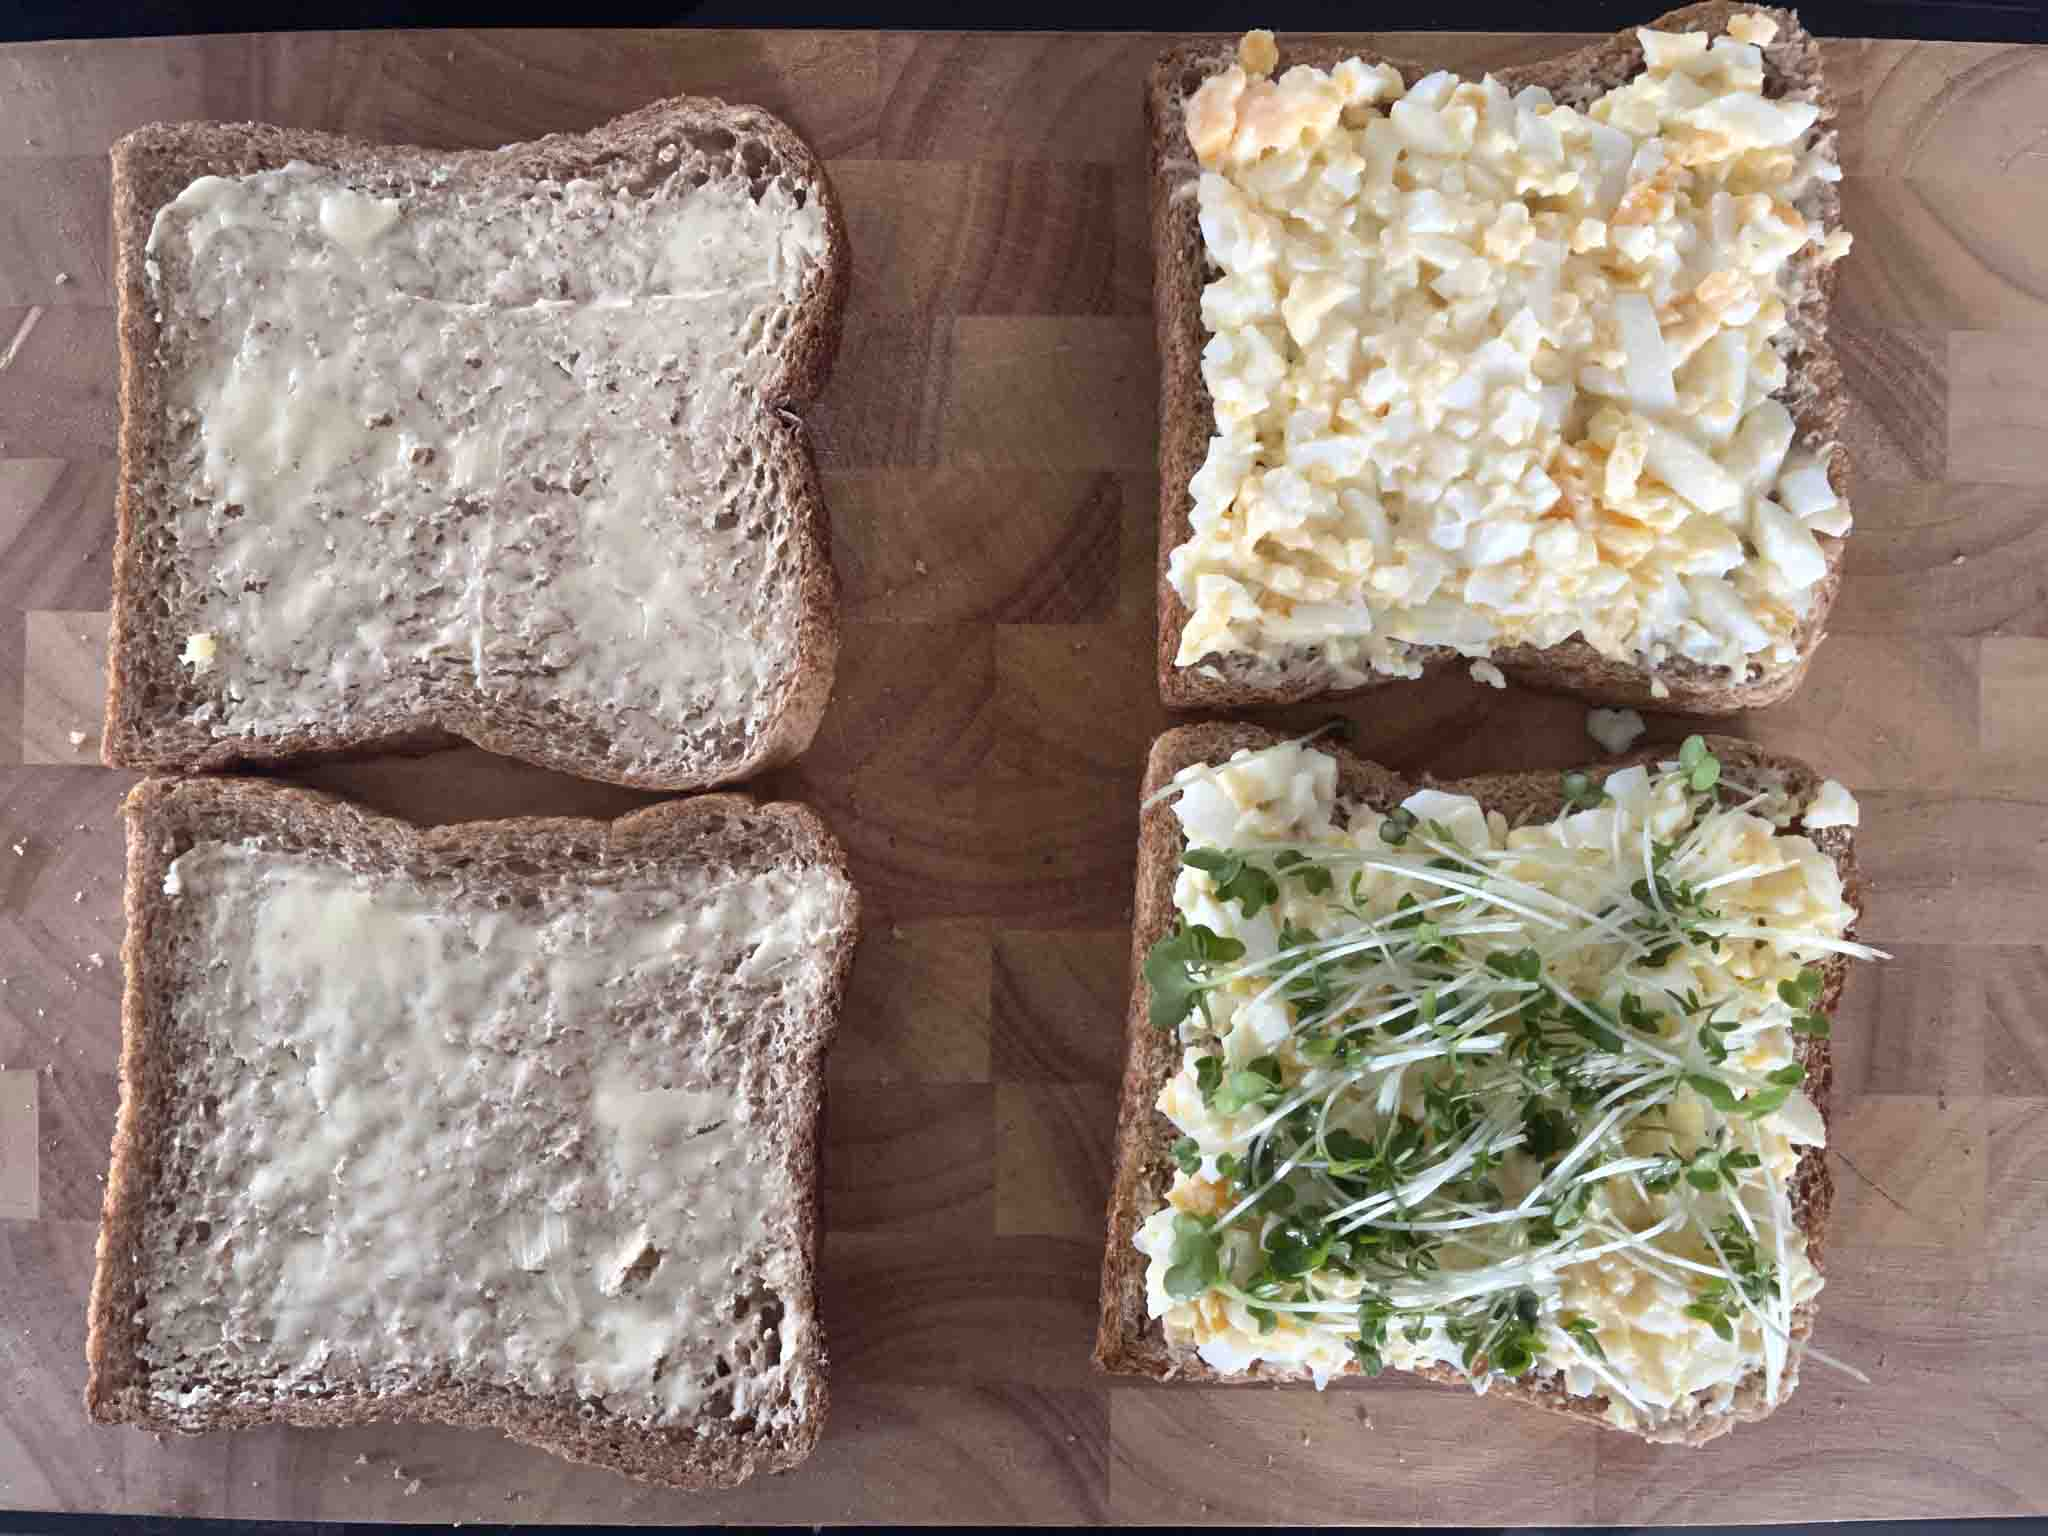 two buttered pices of bread and two pieces with eggm mayonnaise and cress.